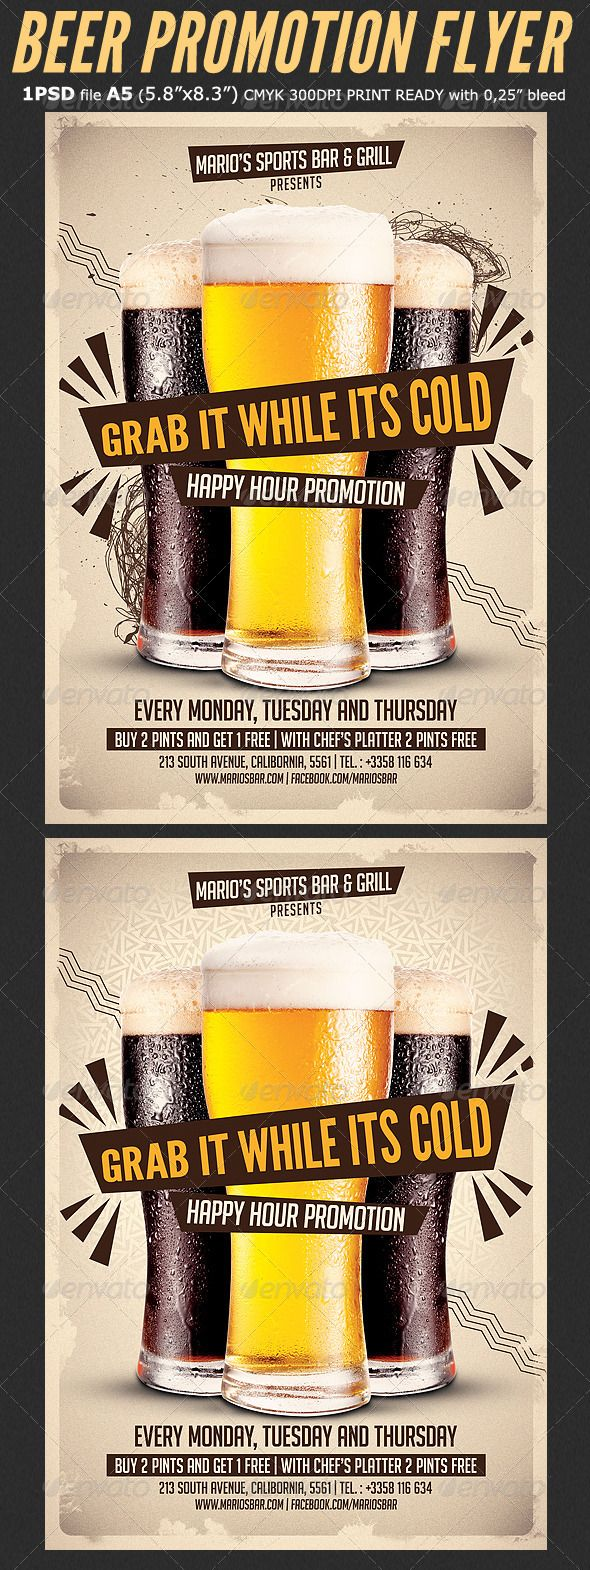 coffee shop promotion flyer template restaurant promotion and beer promotion happy hour flyer psd template buy and